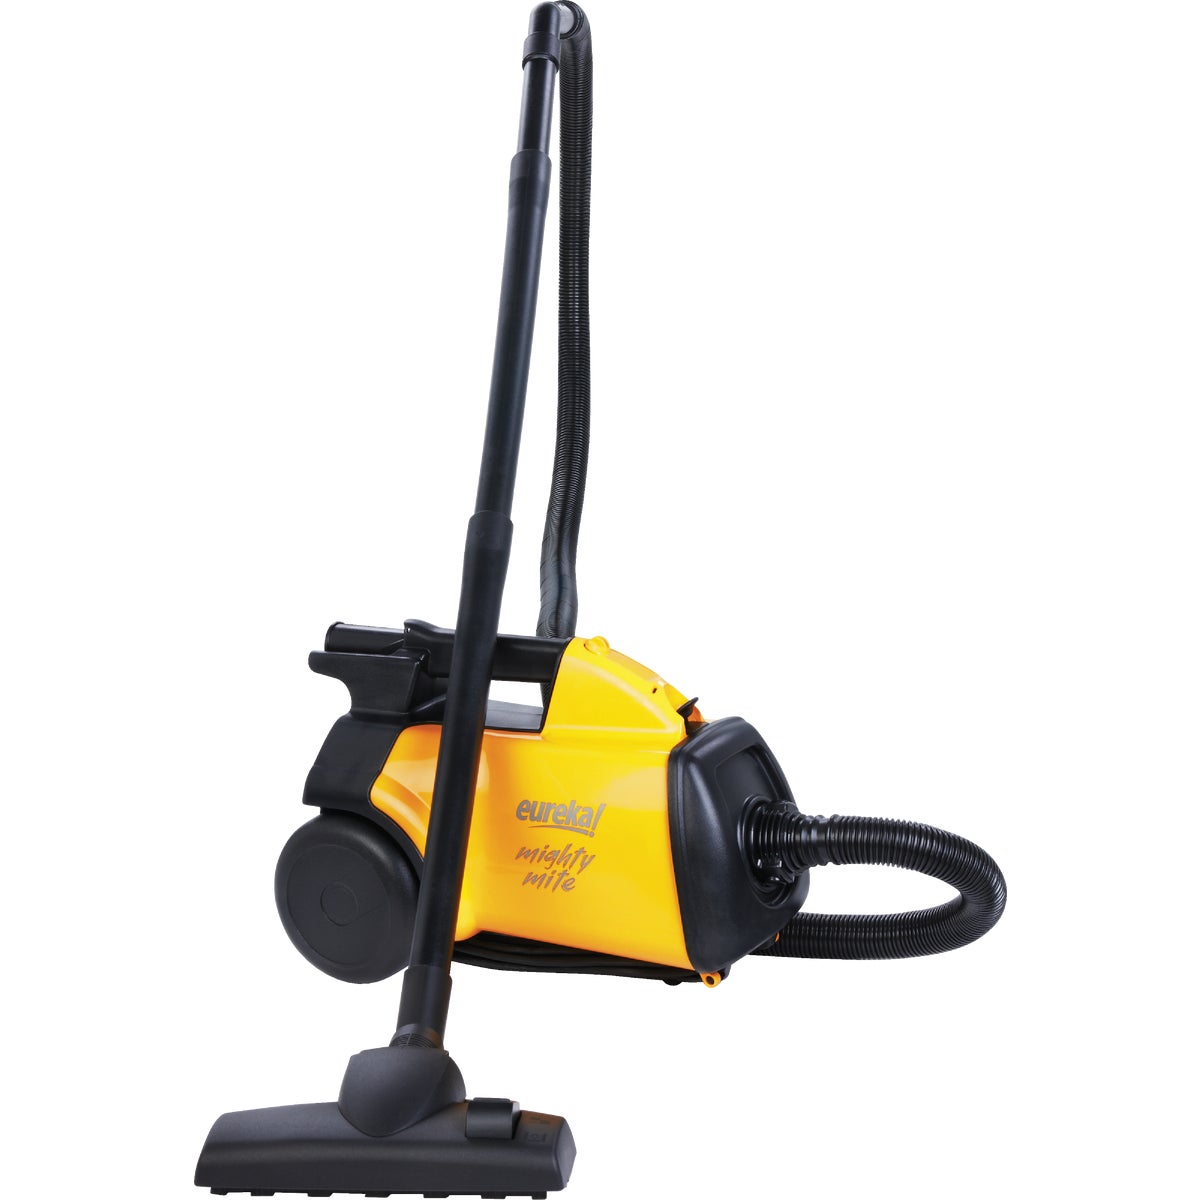 Eureka Mighty Mite Canister Vacuum Cleaner, 3670G